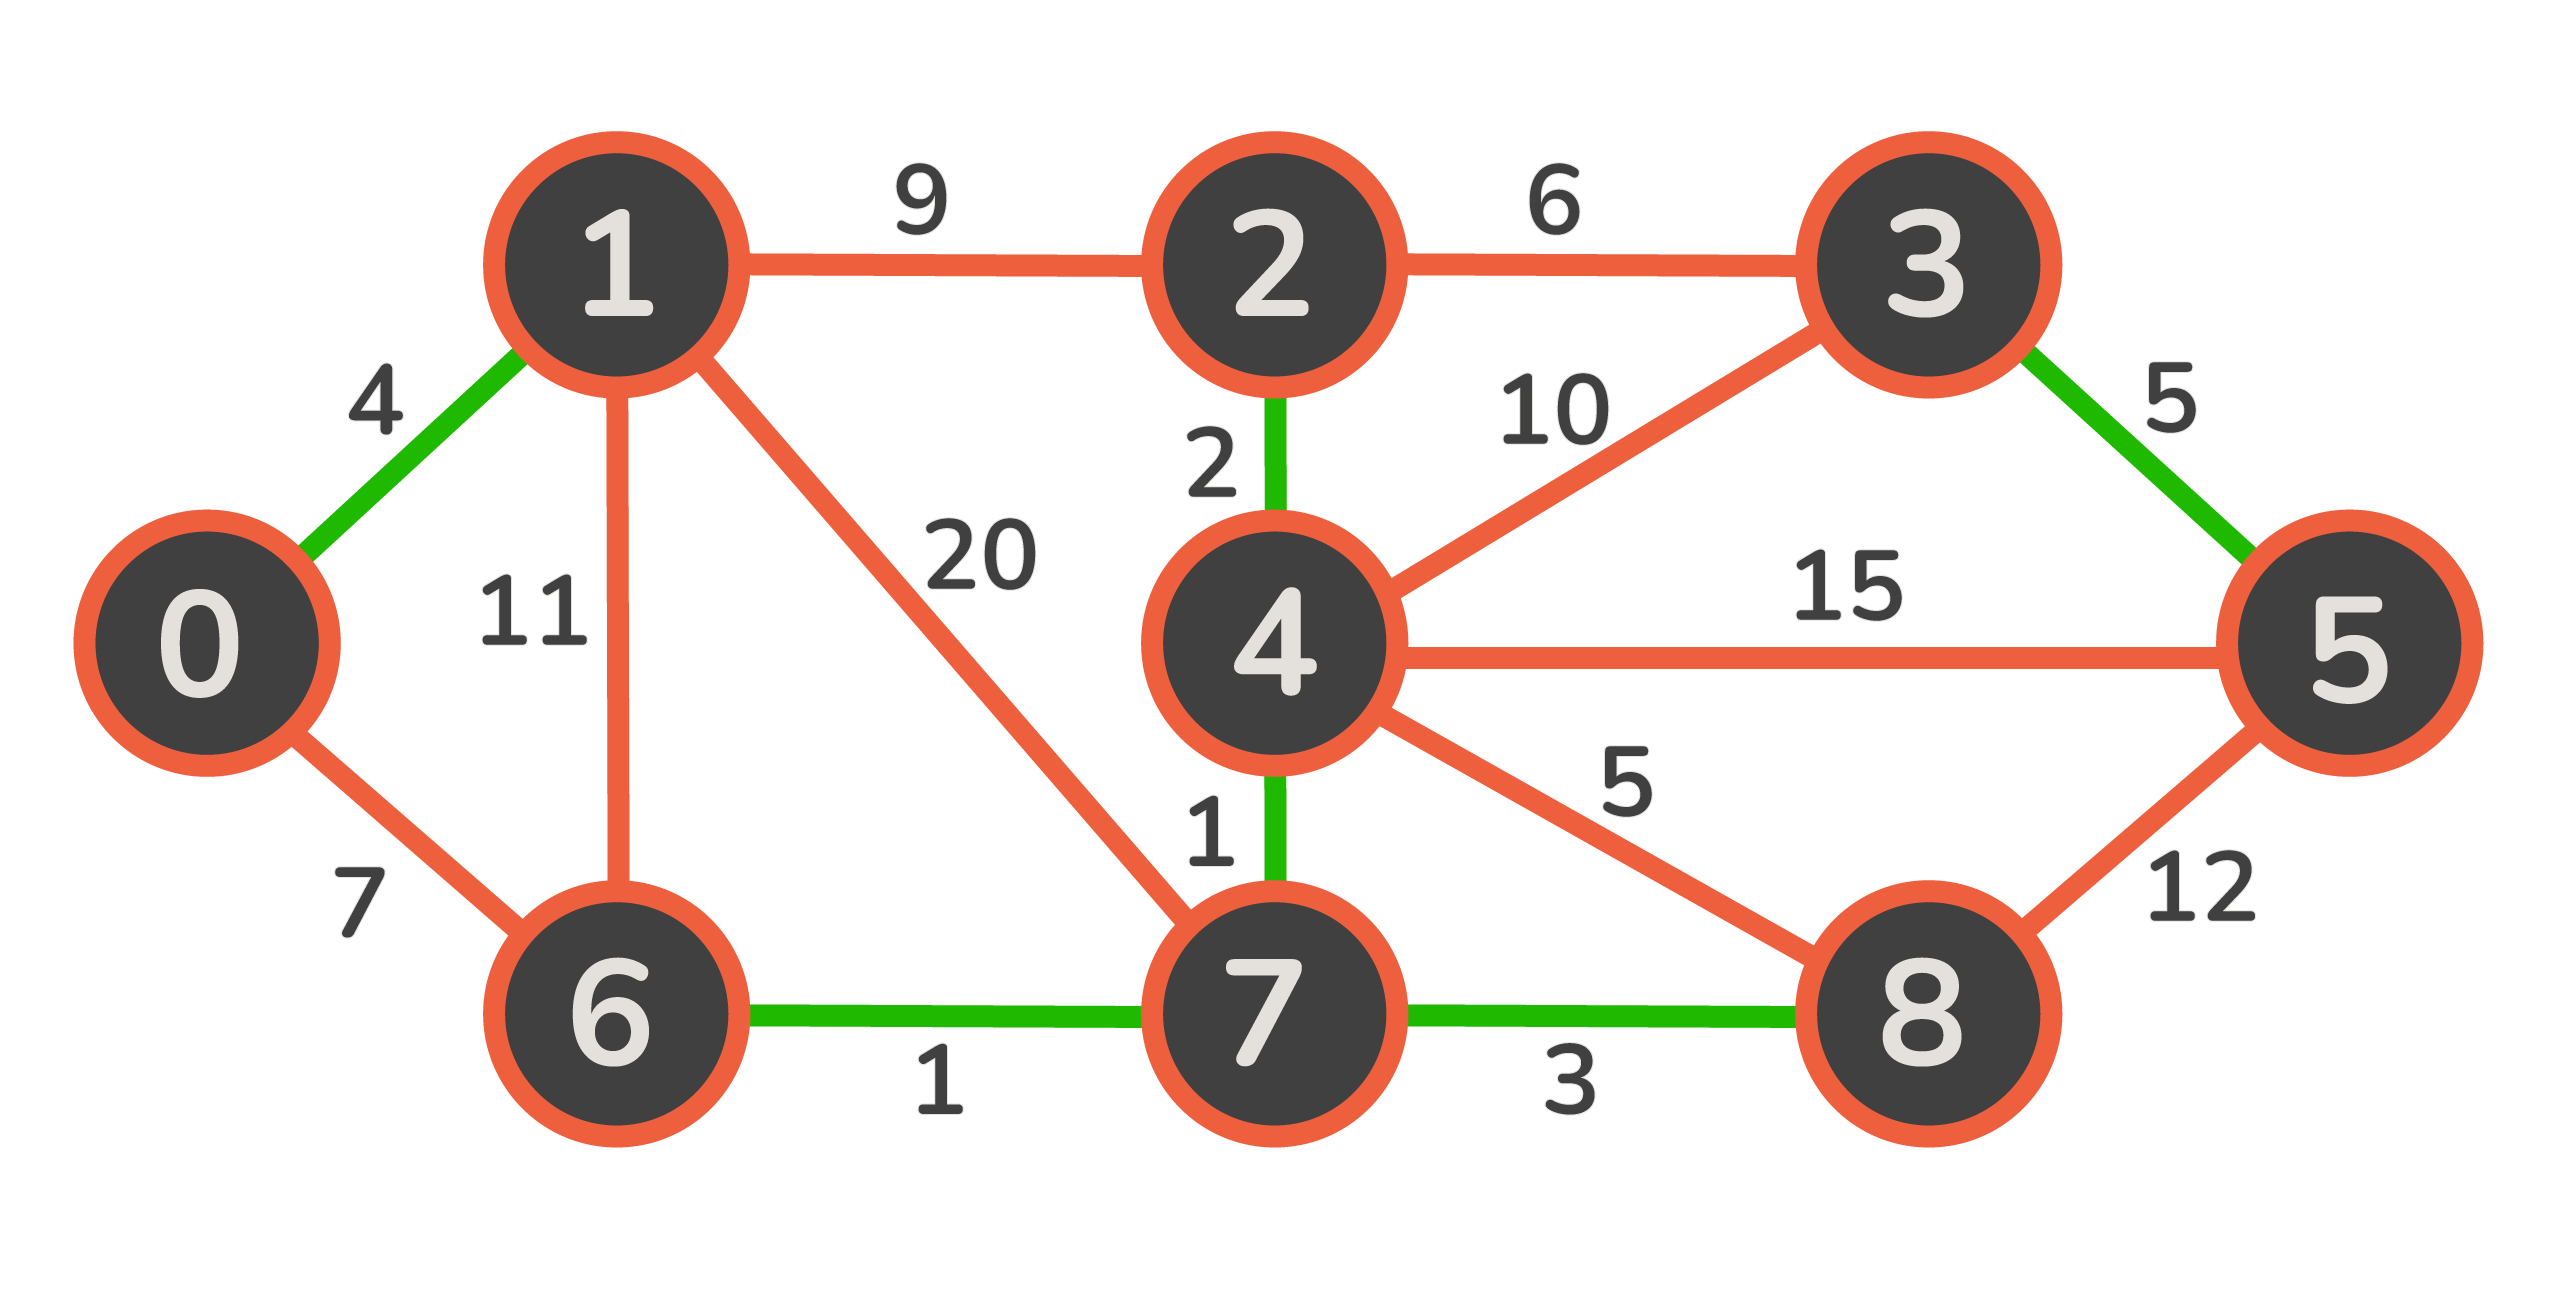 applying boruvka for minimum spanning tree